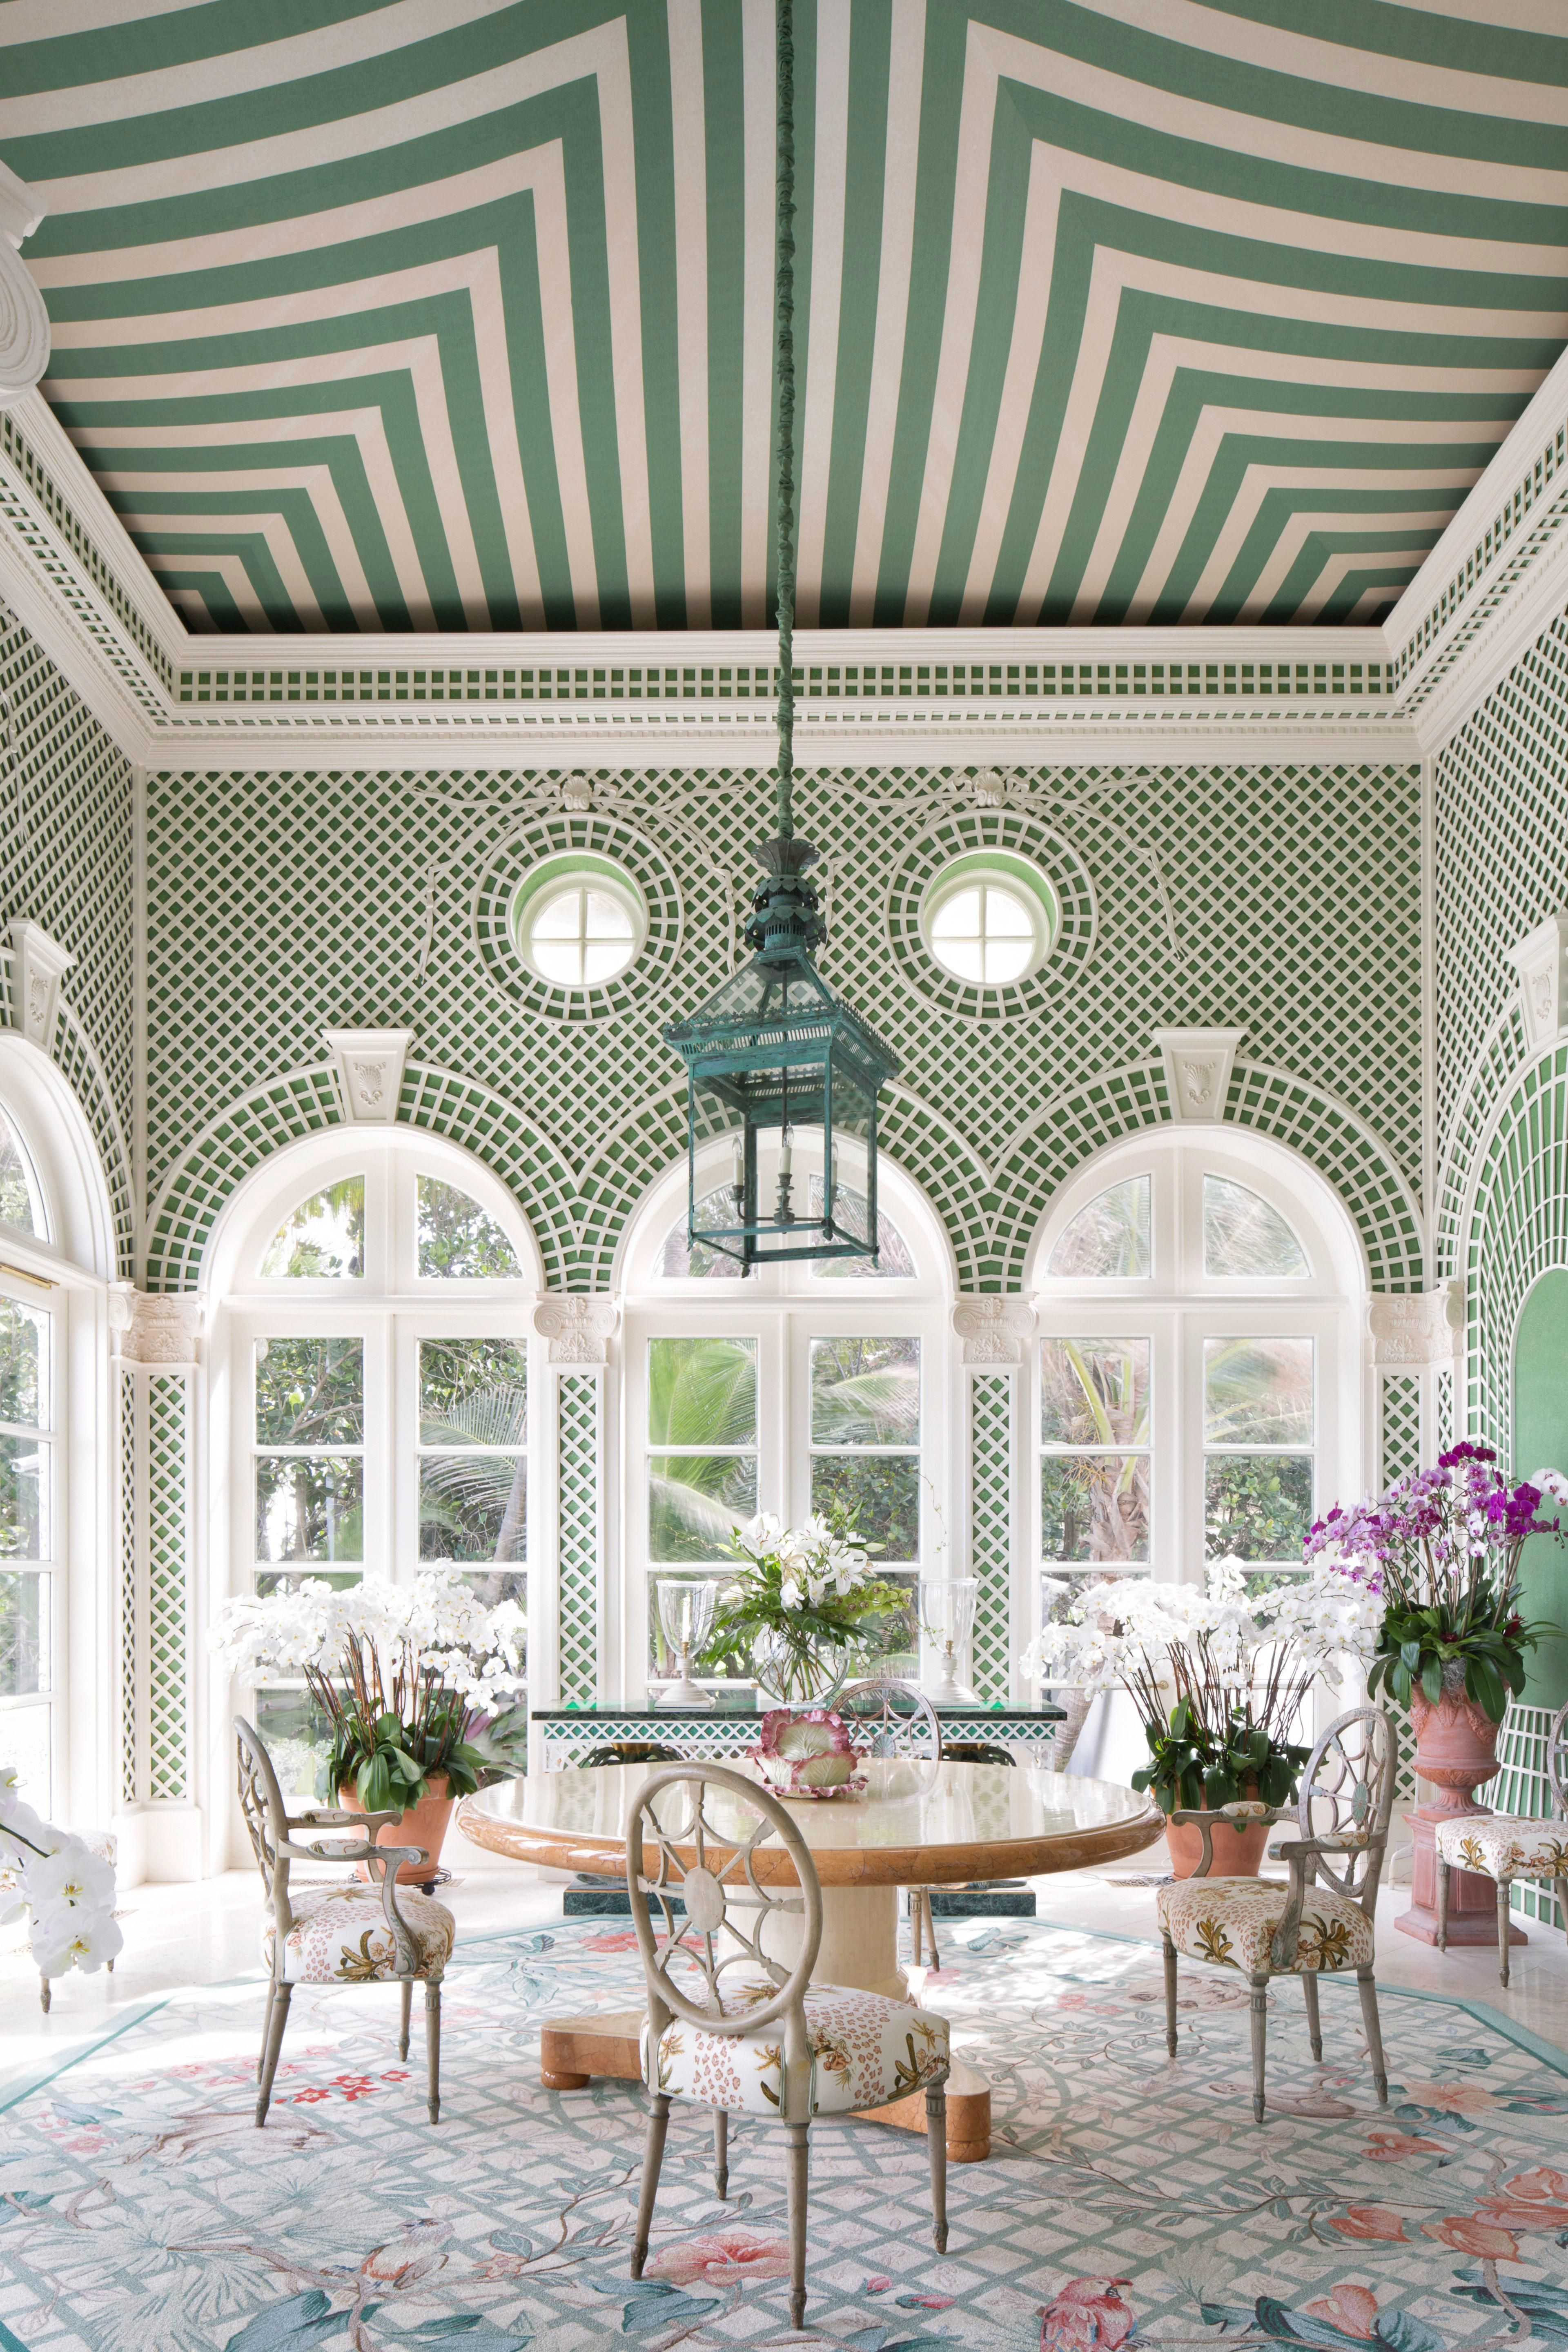 How To Decorate Like You Live In Palm Beach Palm Beach Style Beach Interior Tent Room